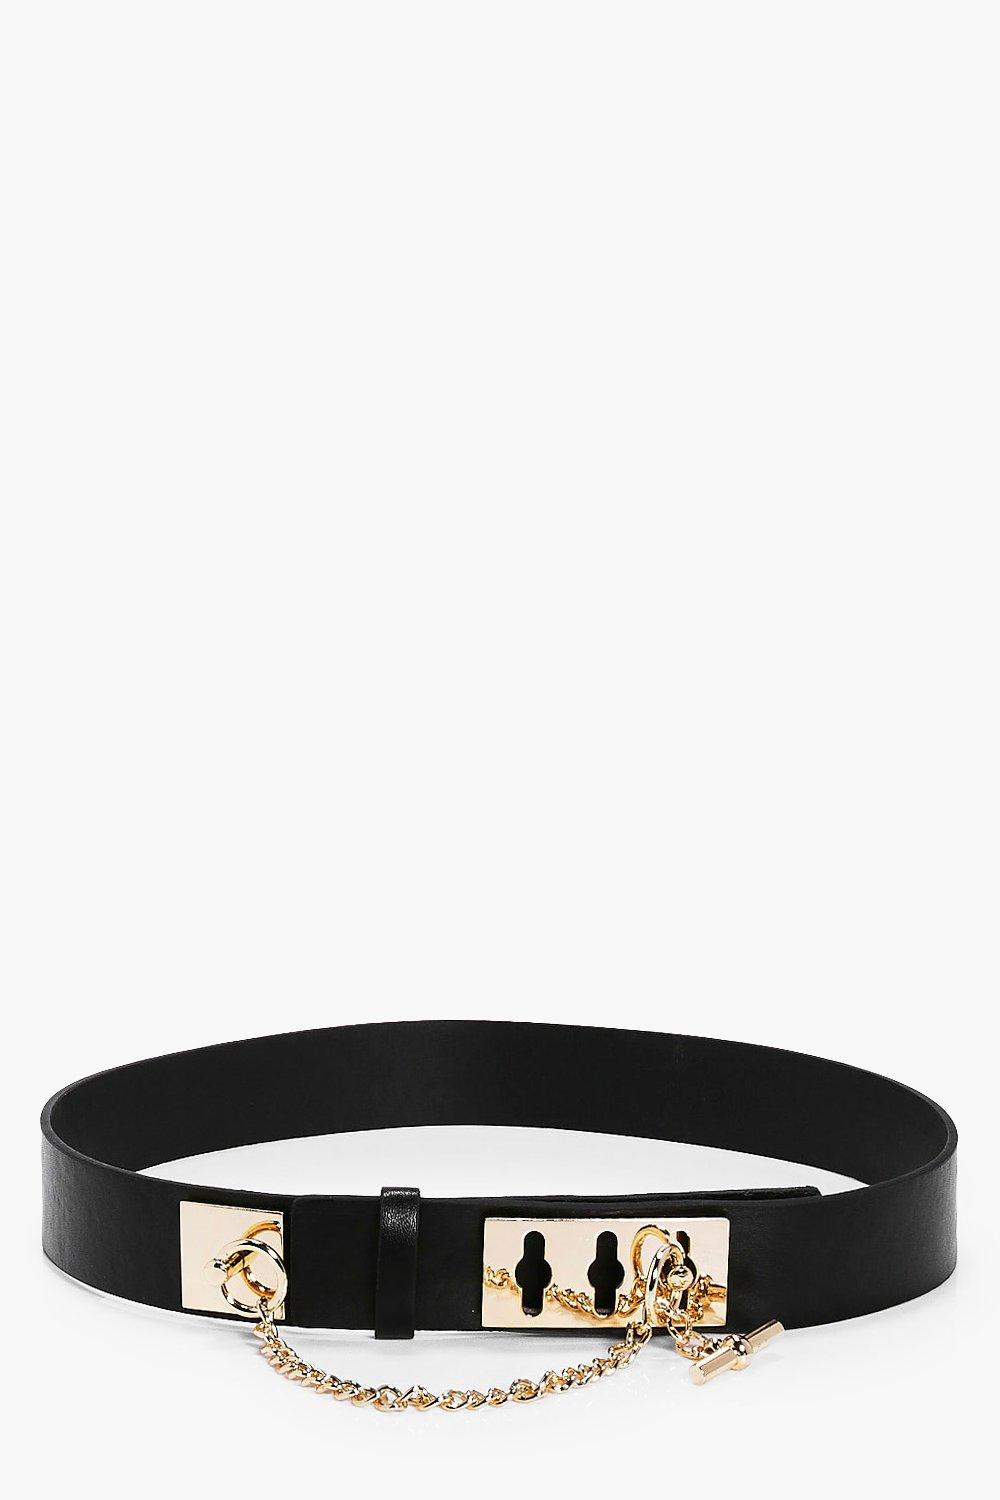 Chain Lock Waist Belt - black - Darcy Chain Lock W